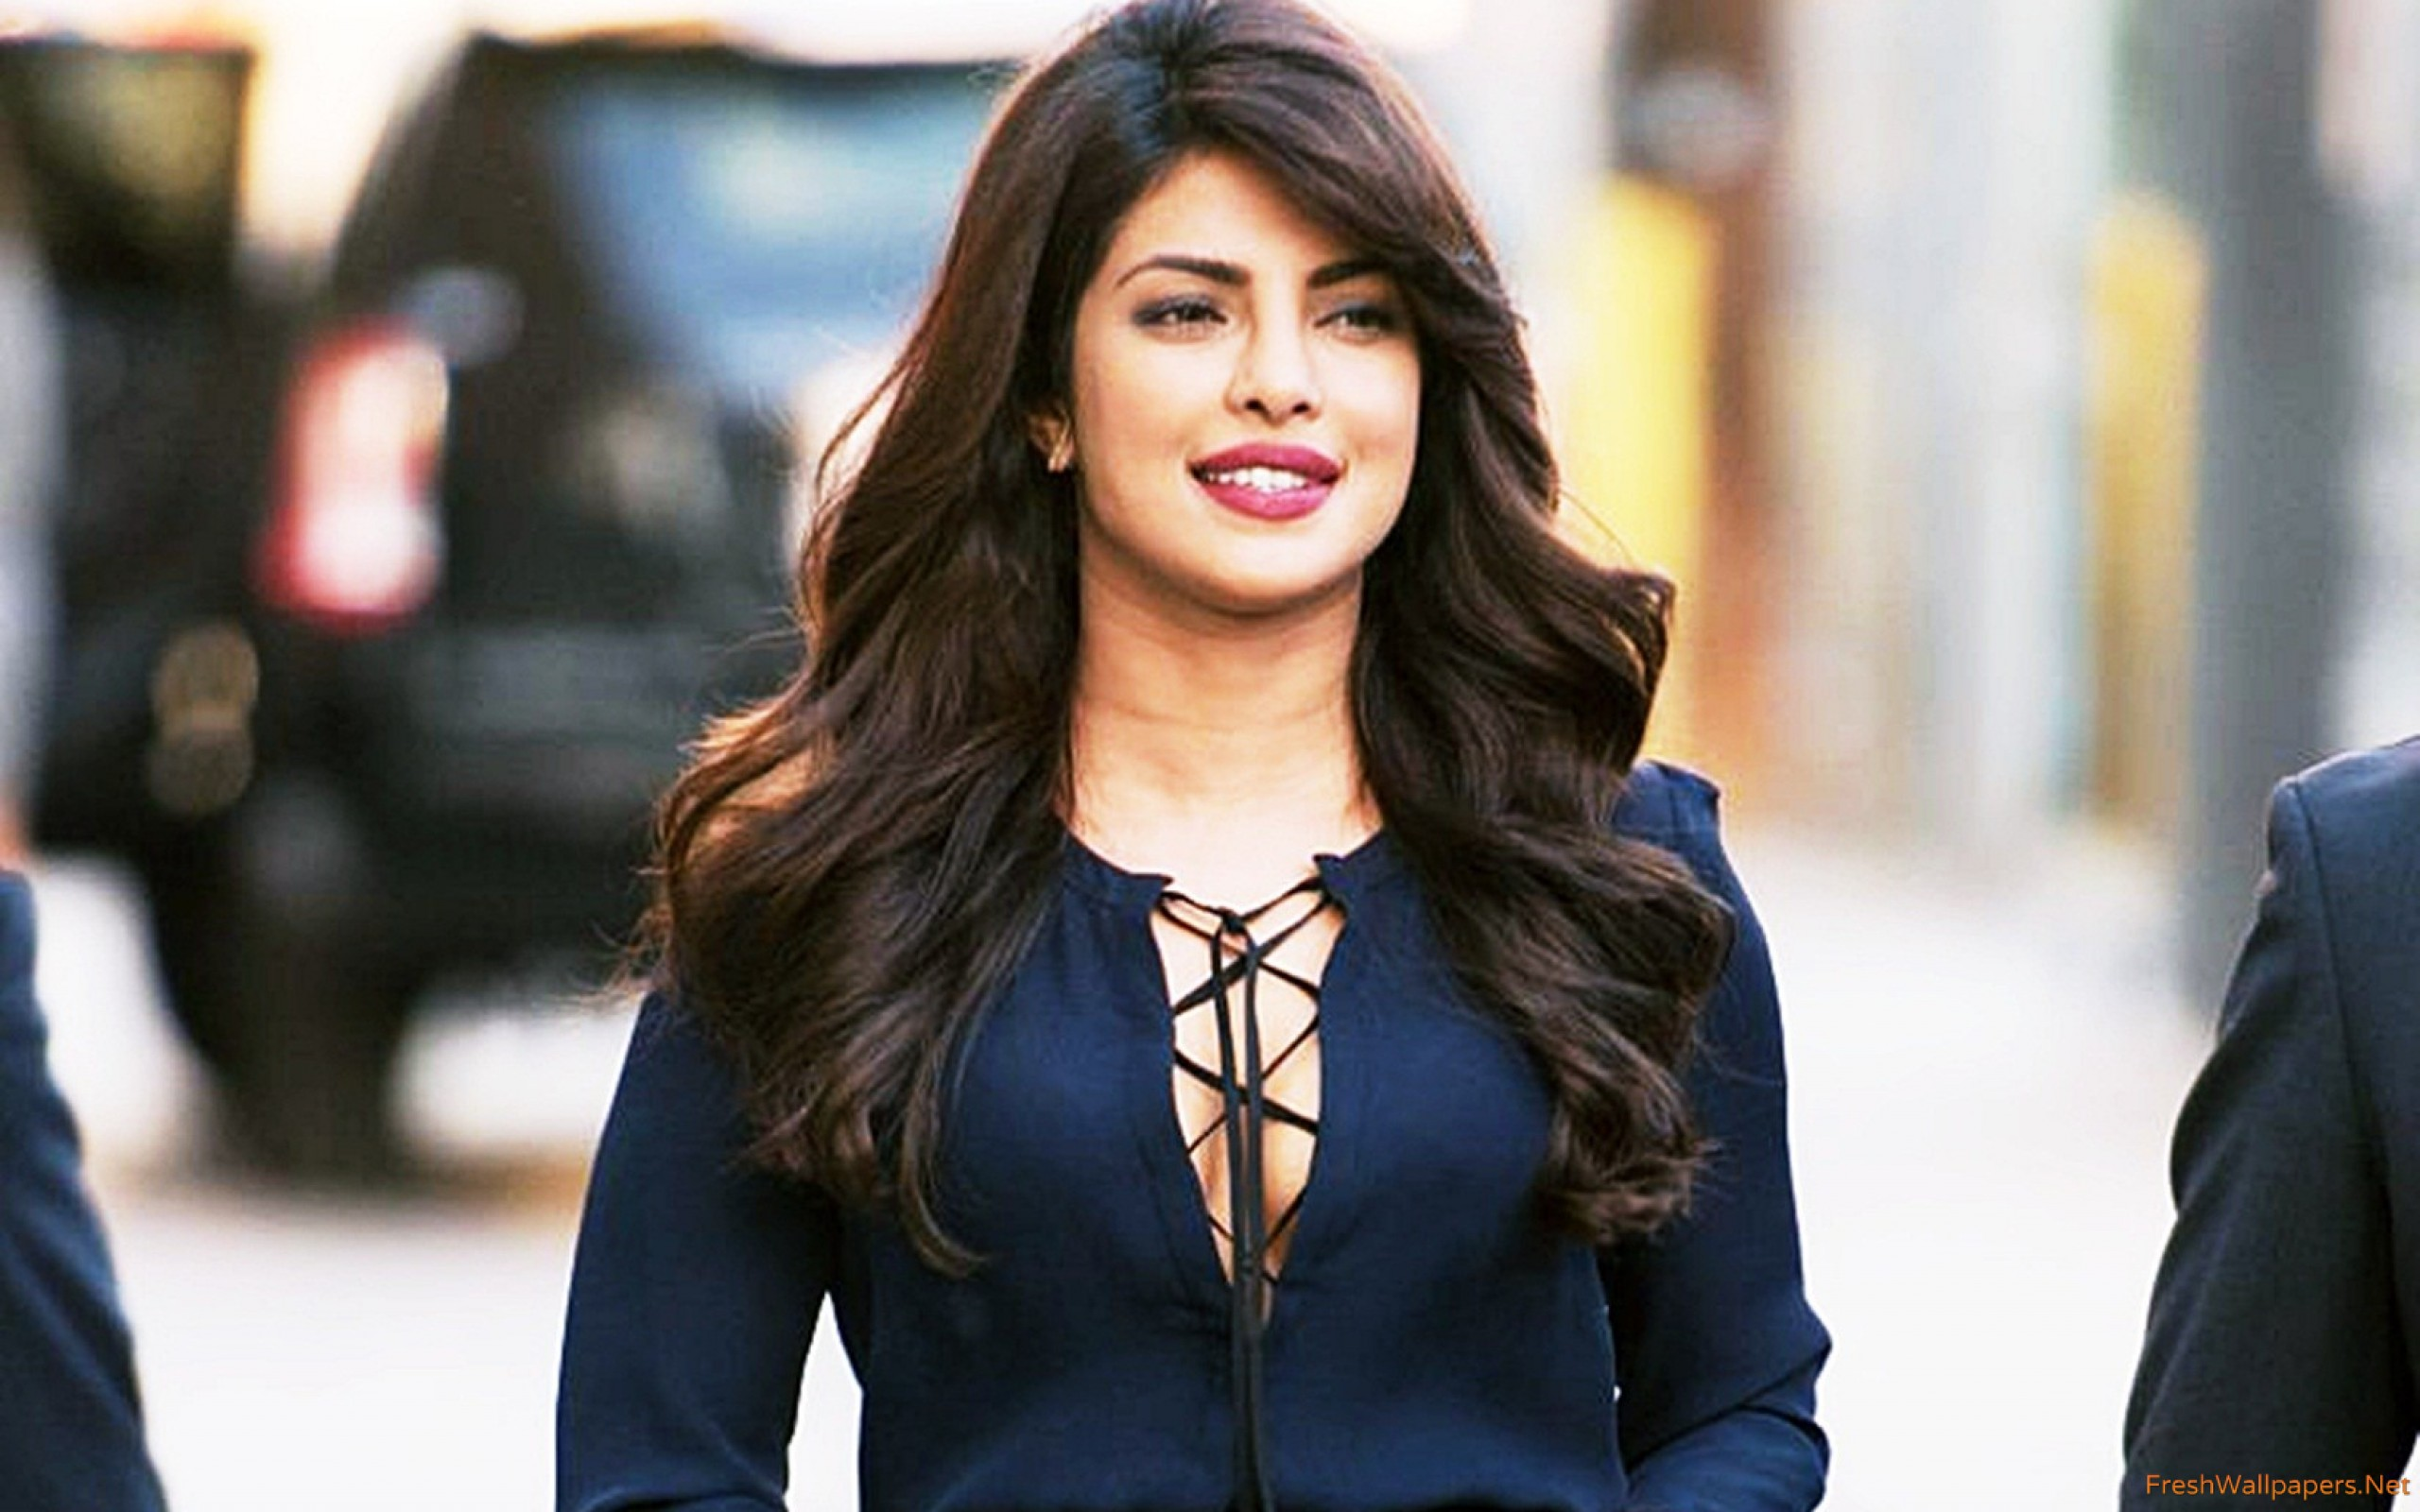 Baywatch Actress Priyanka Chopra's Production Banner Announces Six Films At Cannes Film Festival